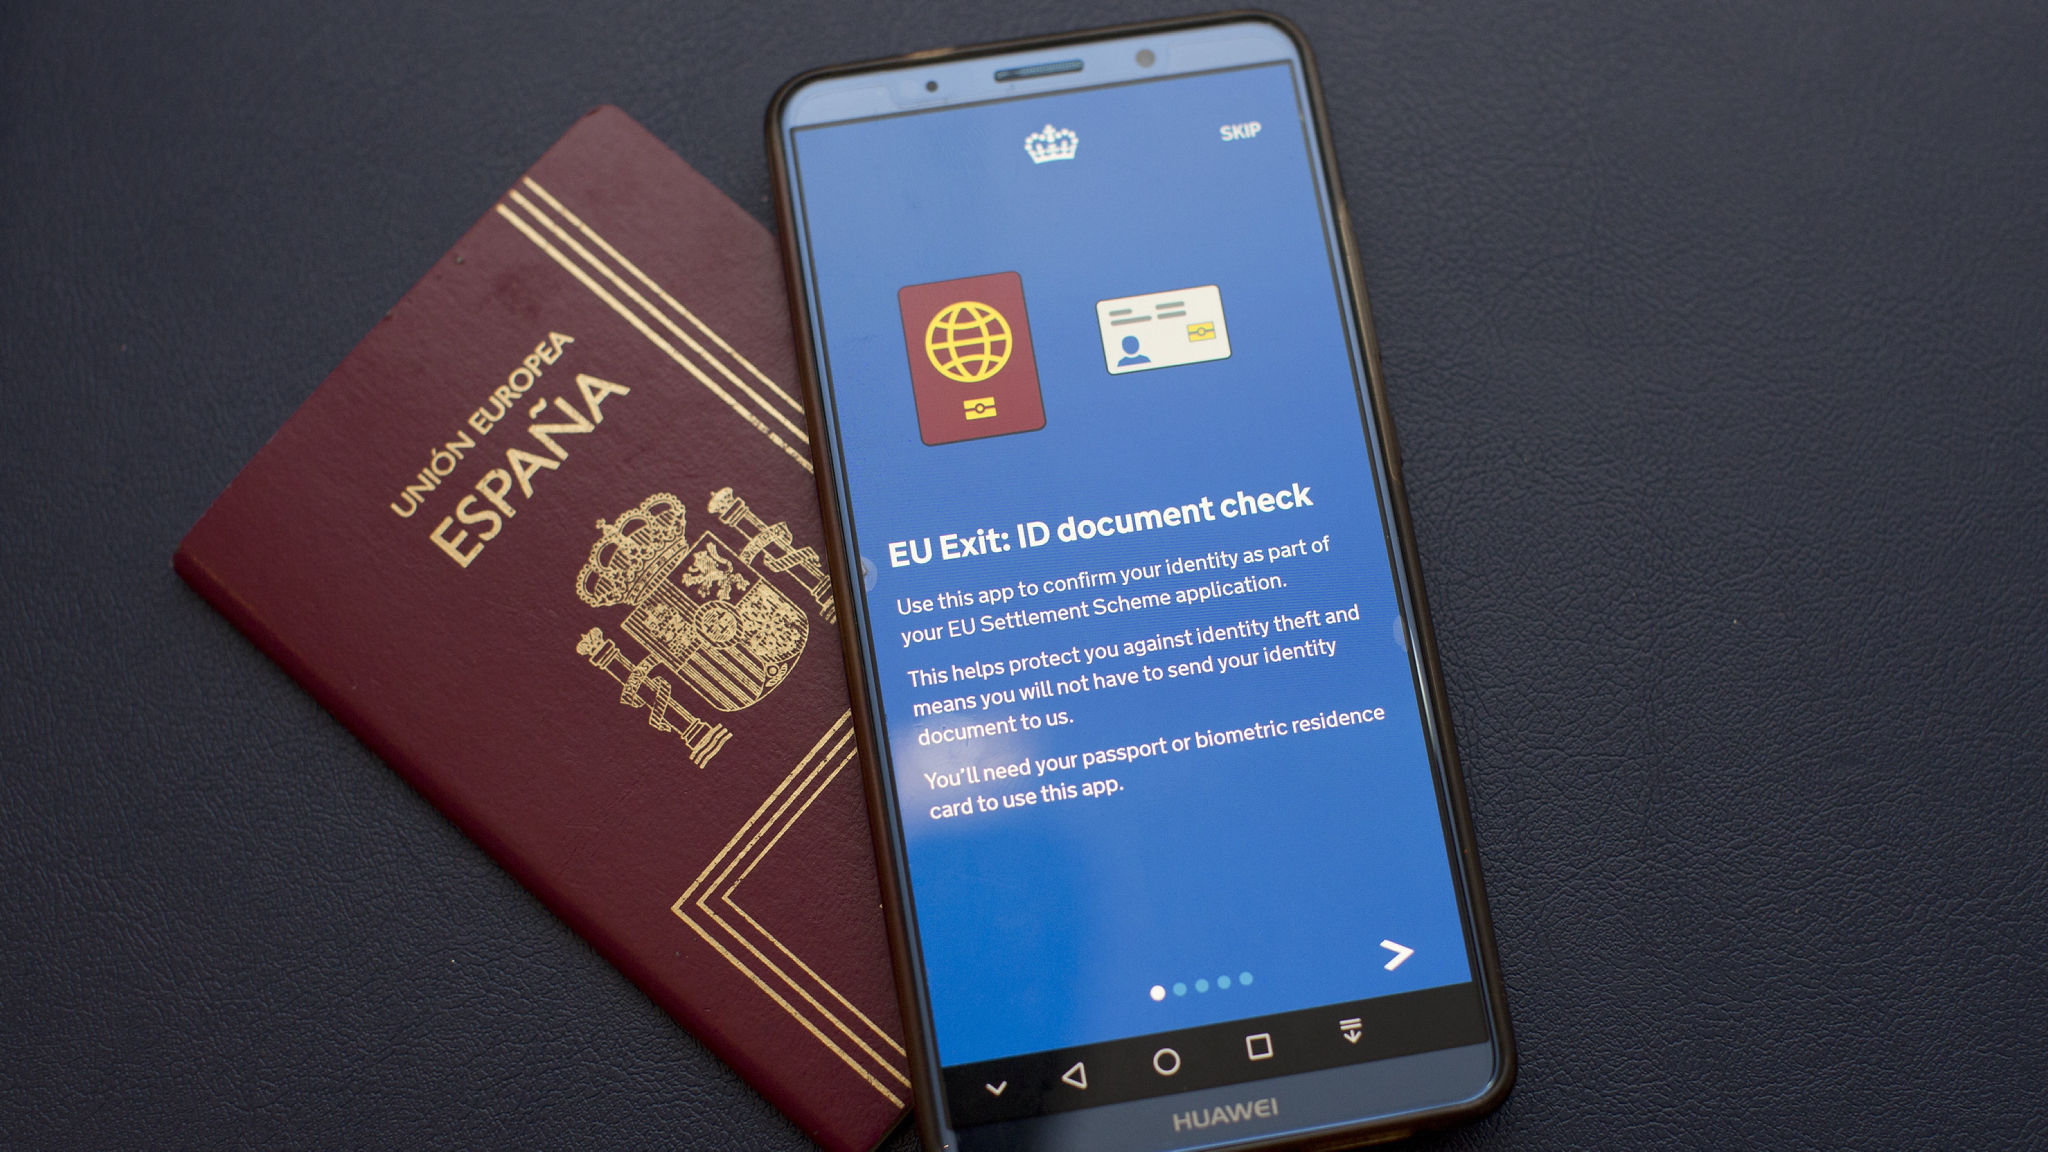 Uk Home Office App For Eu Citizens Easy To Hack Researchers Find Financial Times